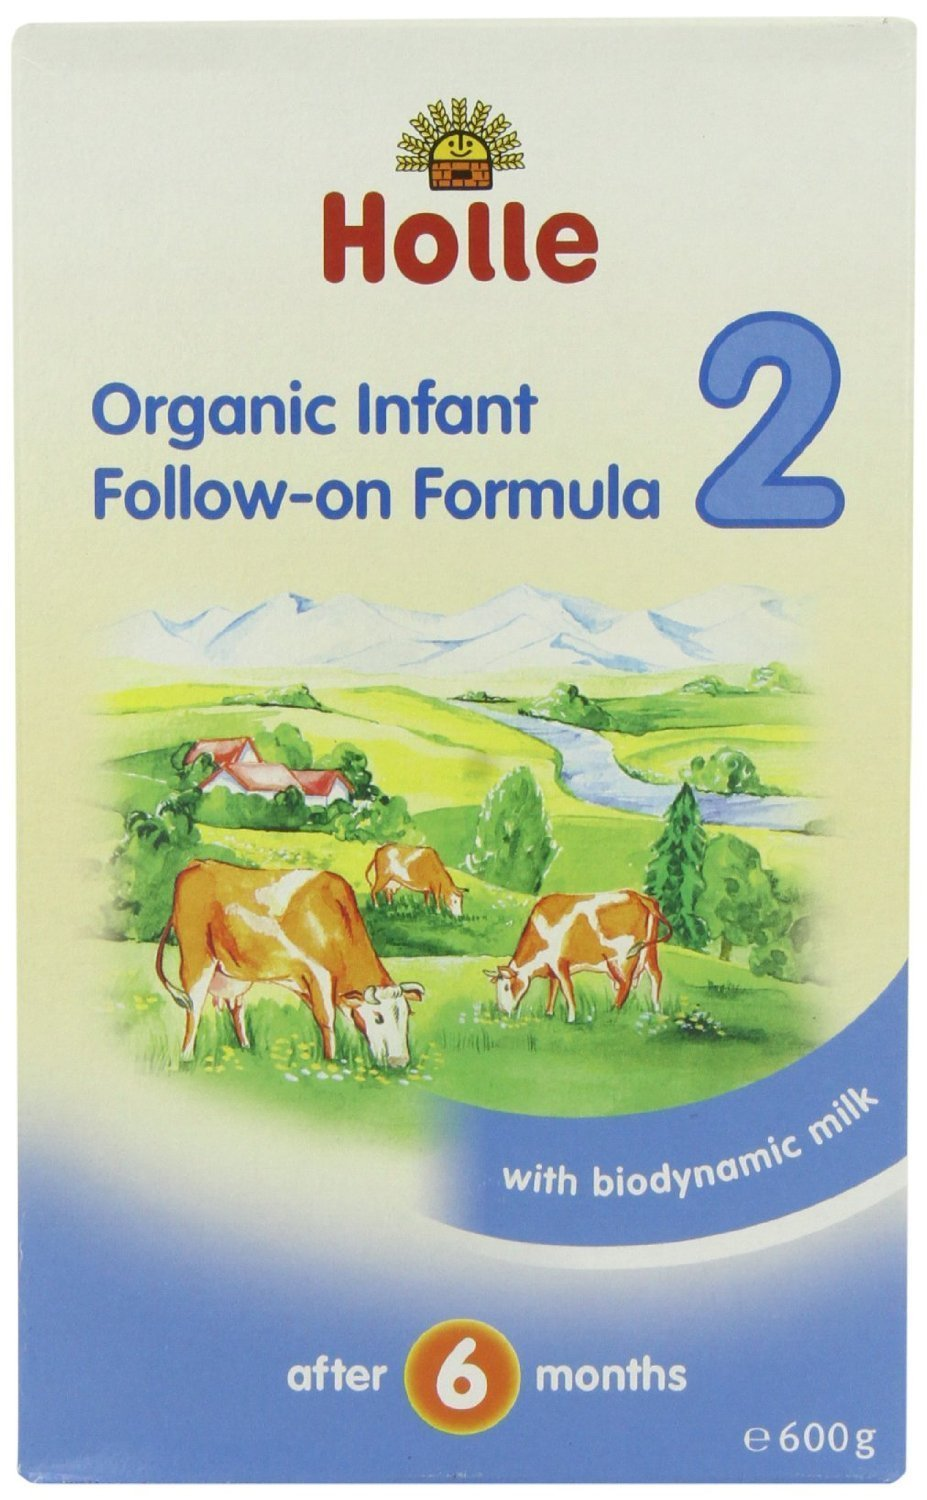 Org Baby Infant Follow On 2 (600g) - x 2 *Twin DEAL Pack* Holle